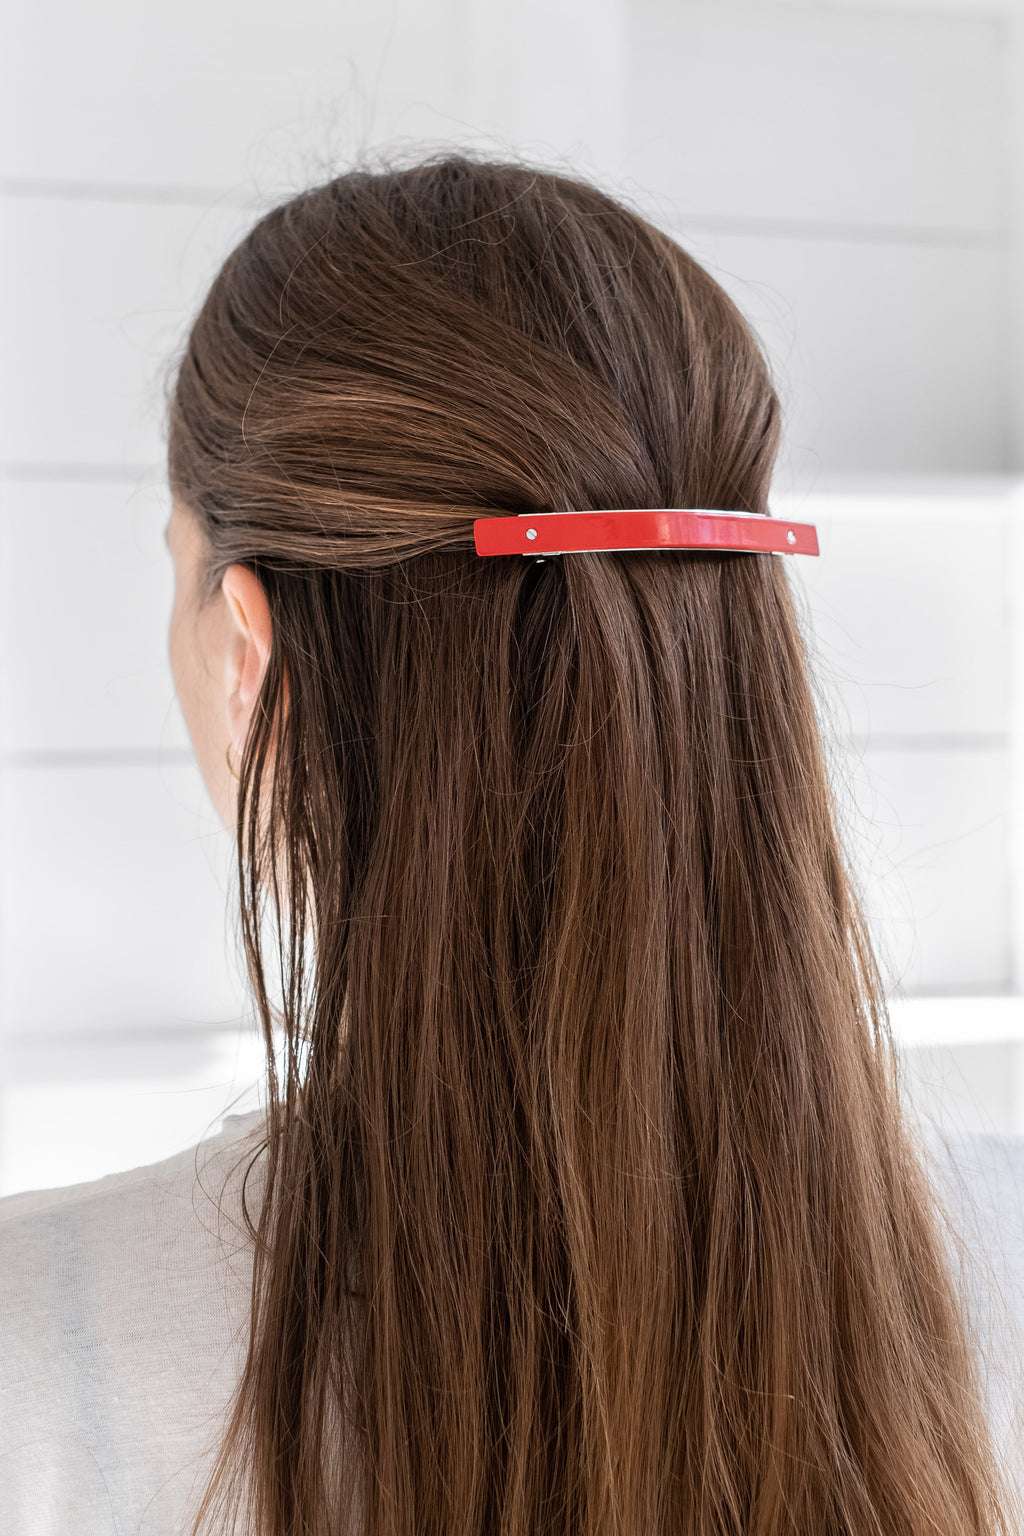 XL BARRETTE SHINY RED